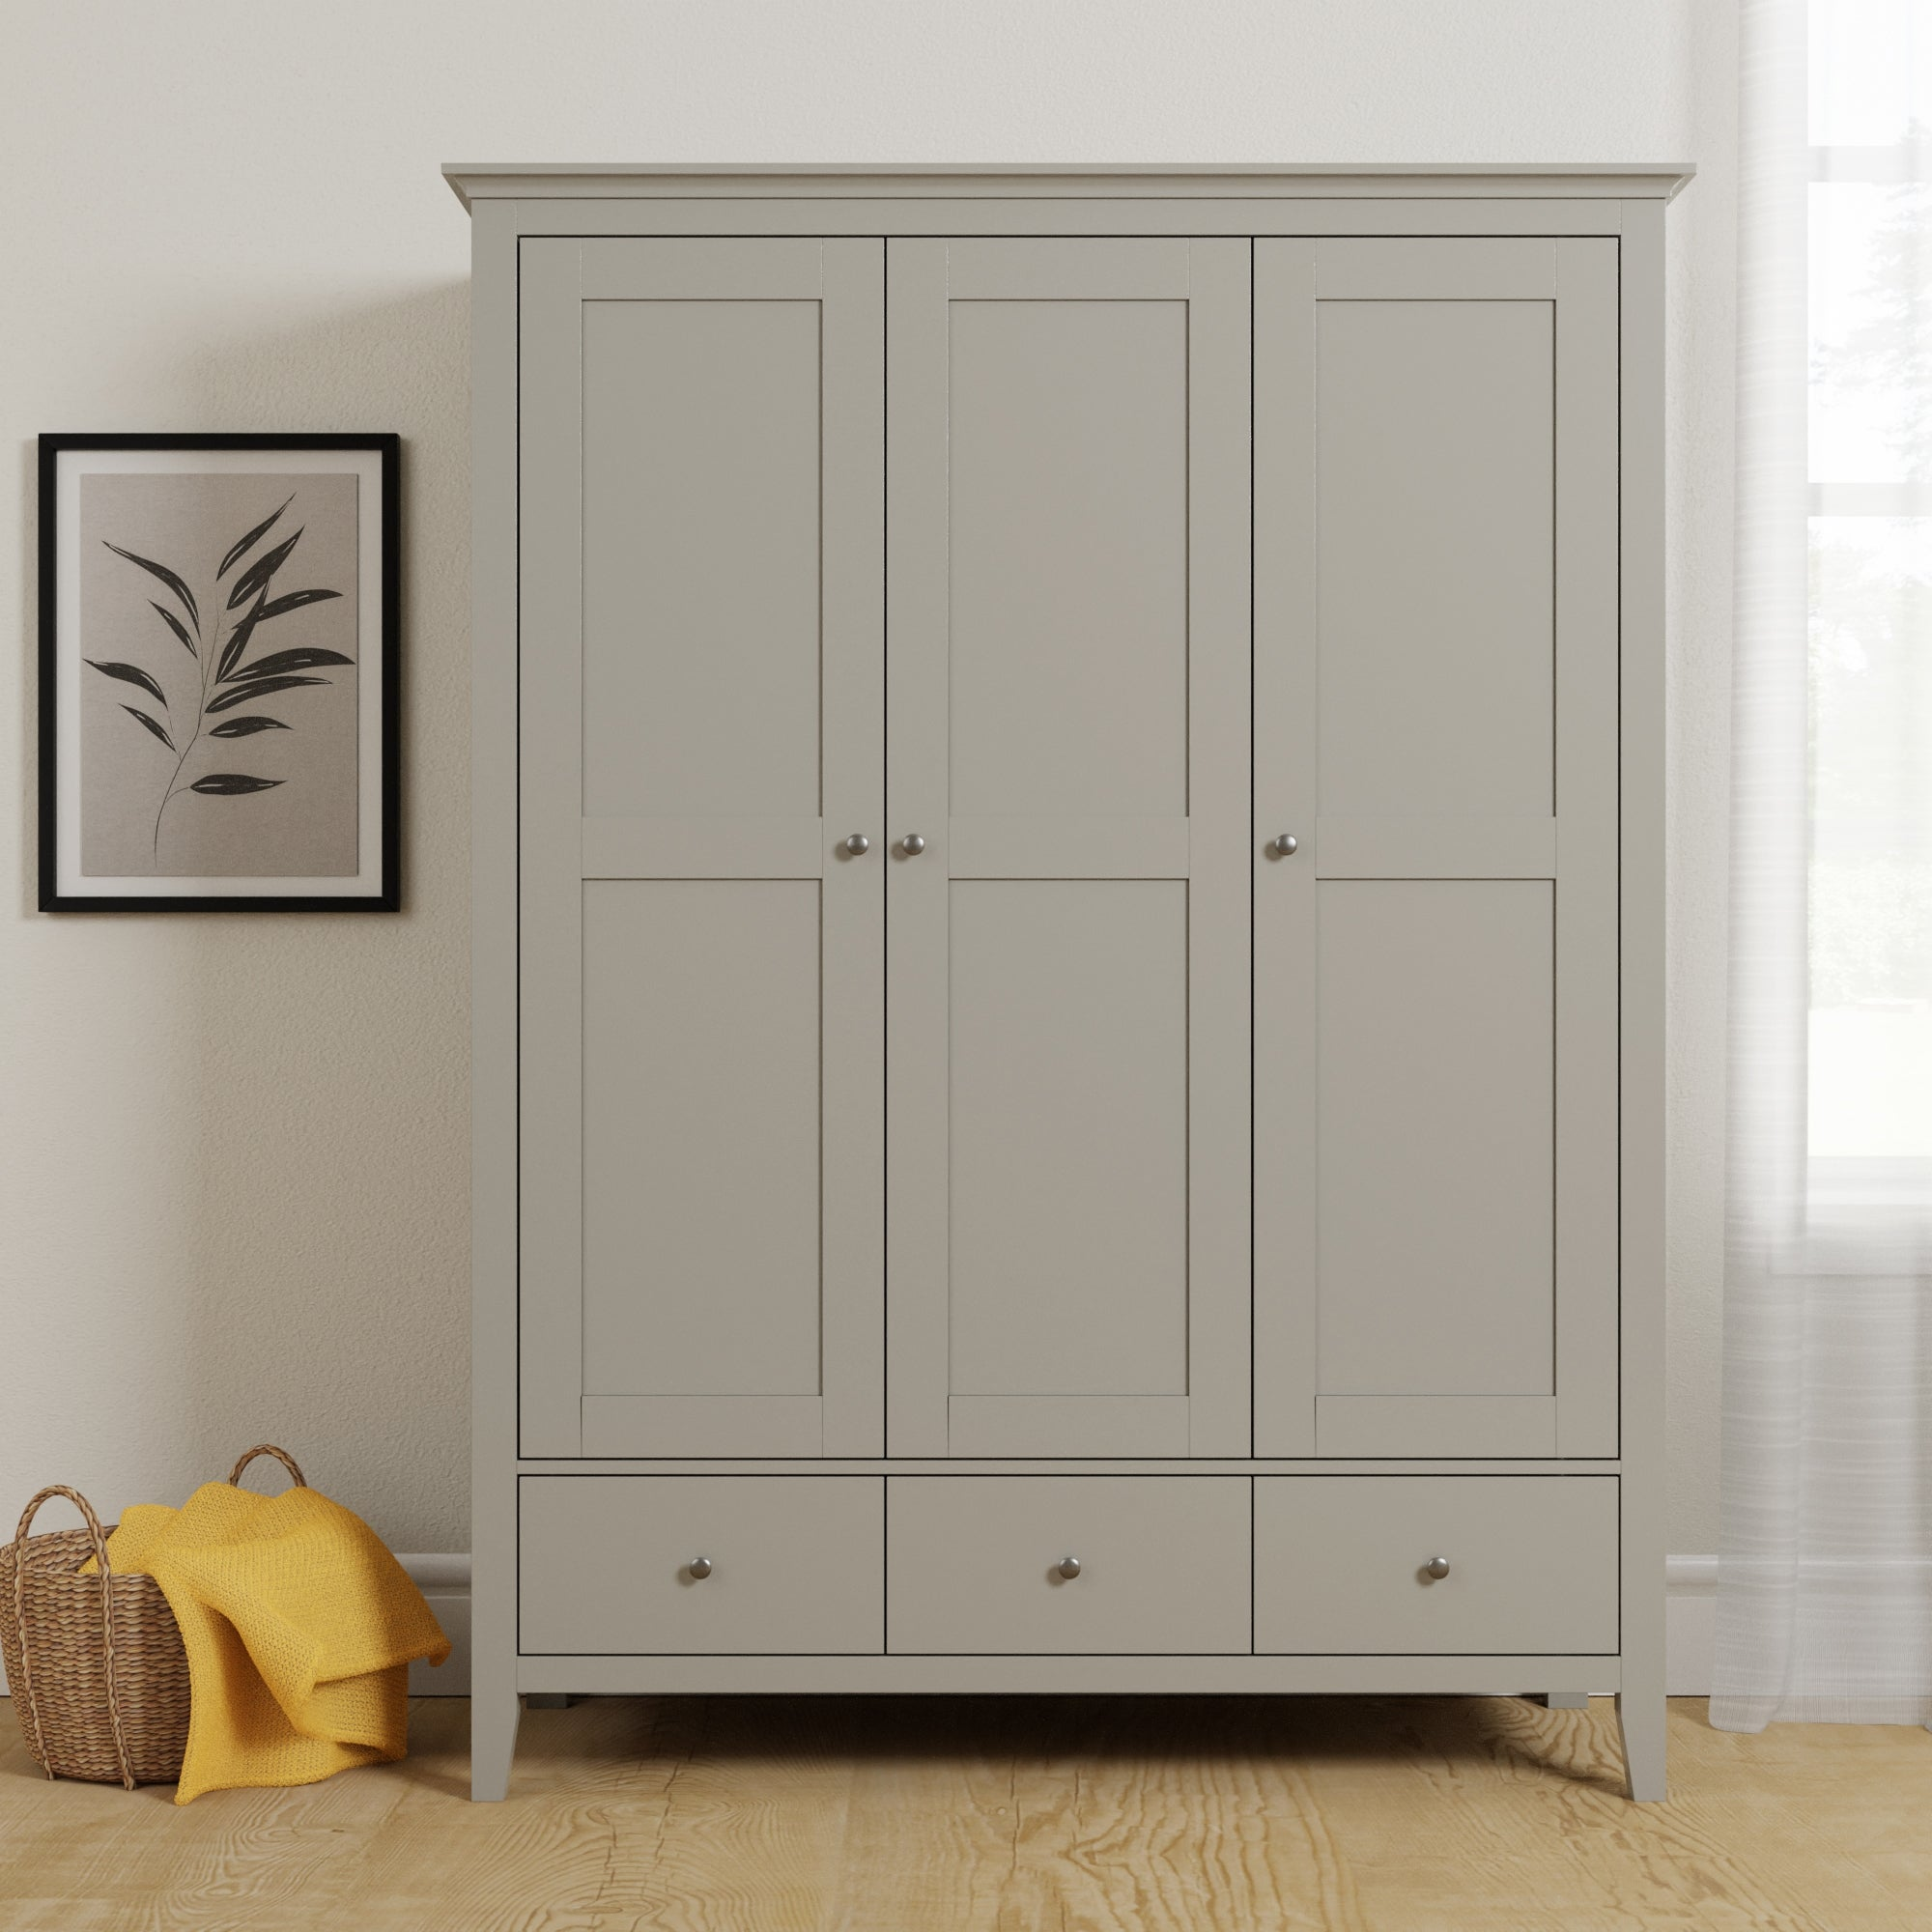 Dunelm Lynton Grey Triple Wardrobe Grey |